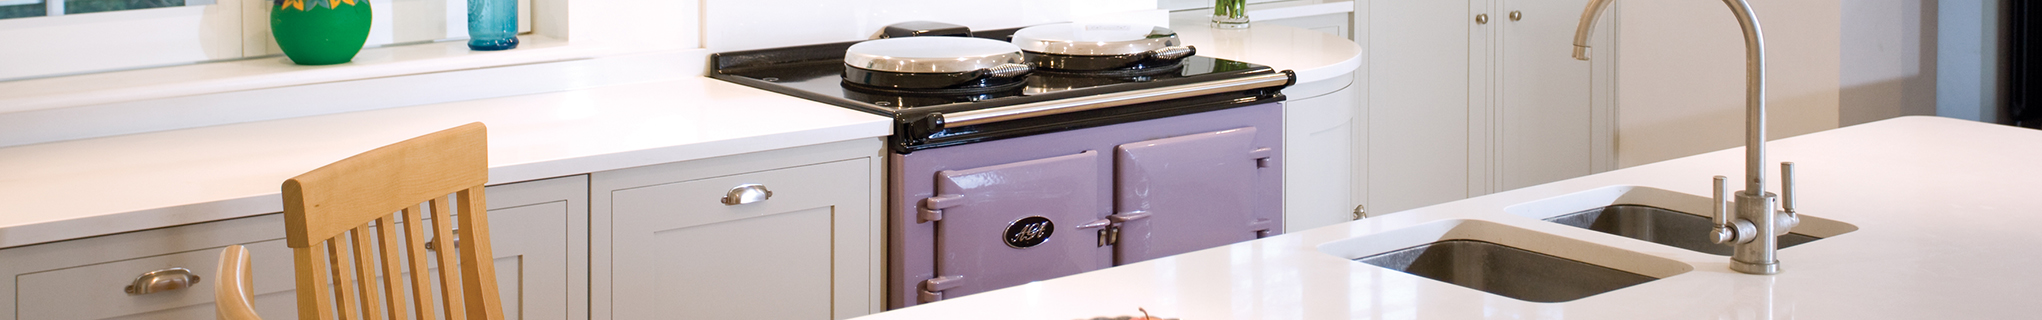 AGA Outlet Store open in Telford